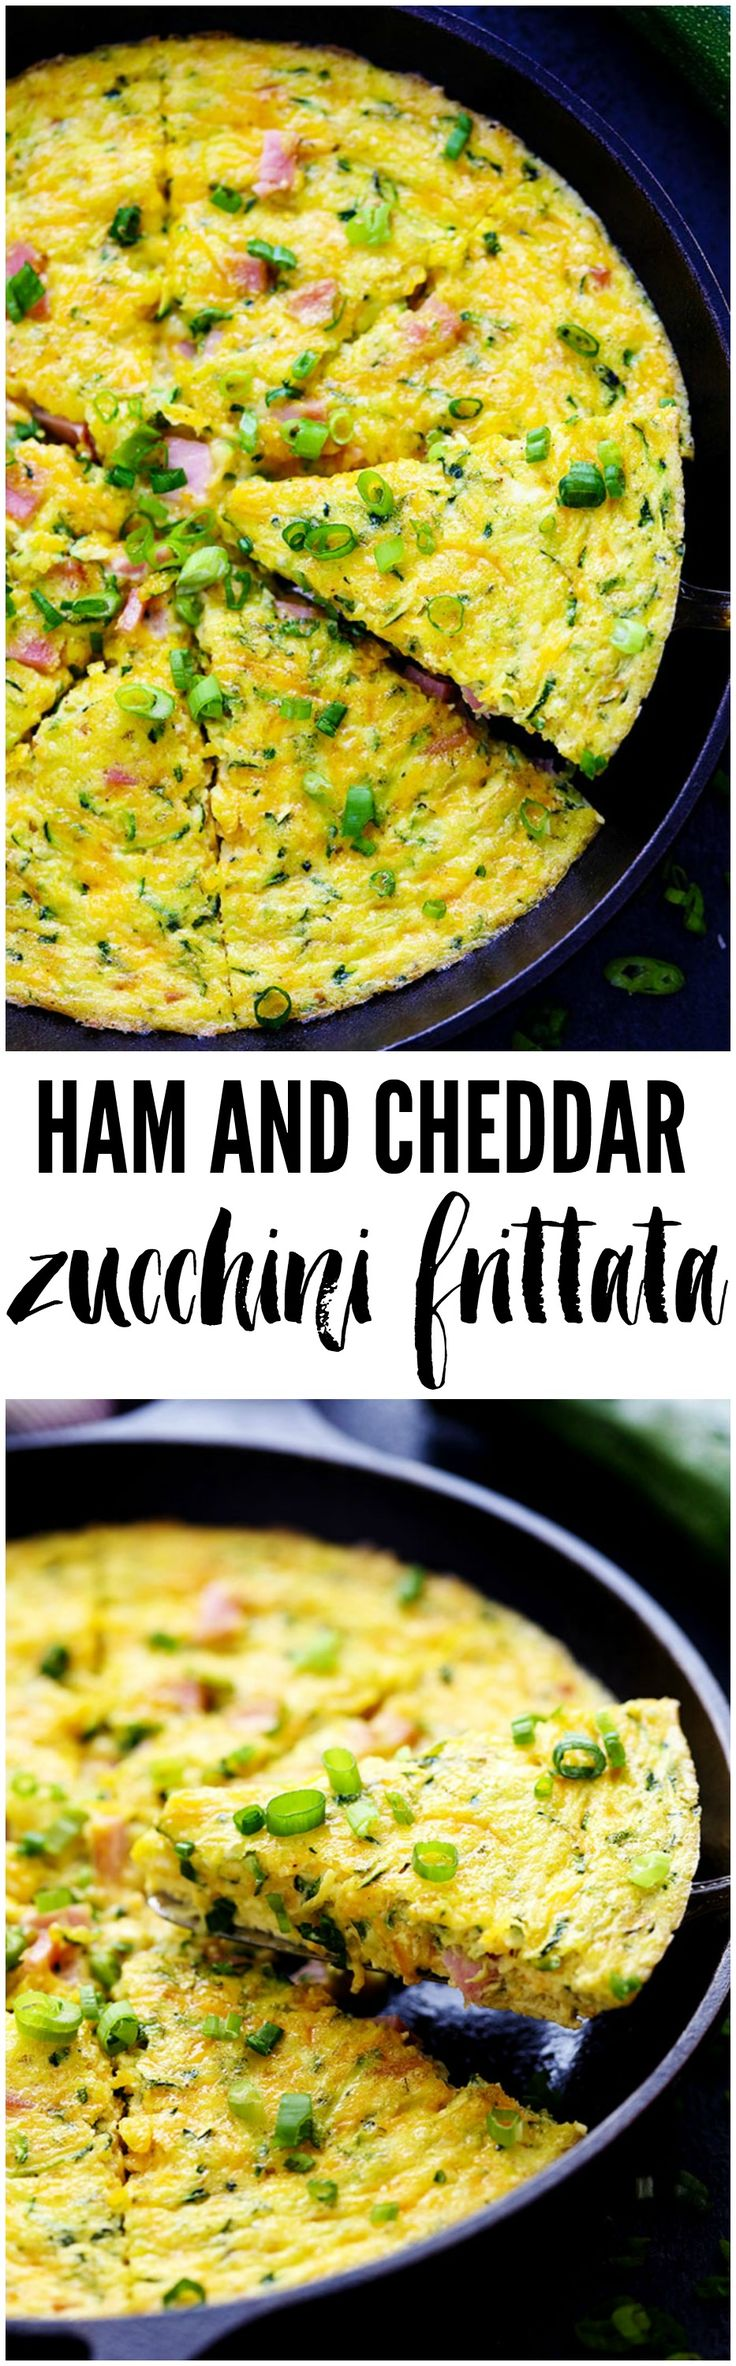 Frittata is filled with two cups of zucchini, ham, and cheddar cheese ...